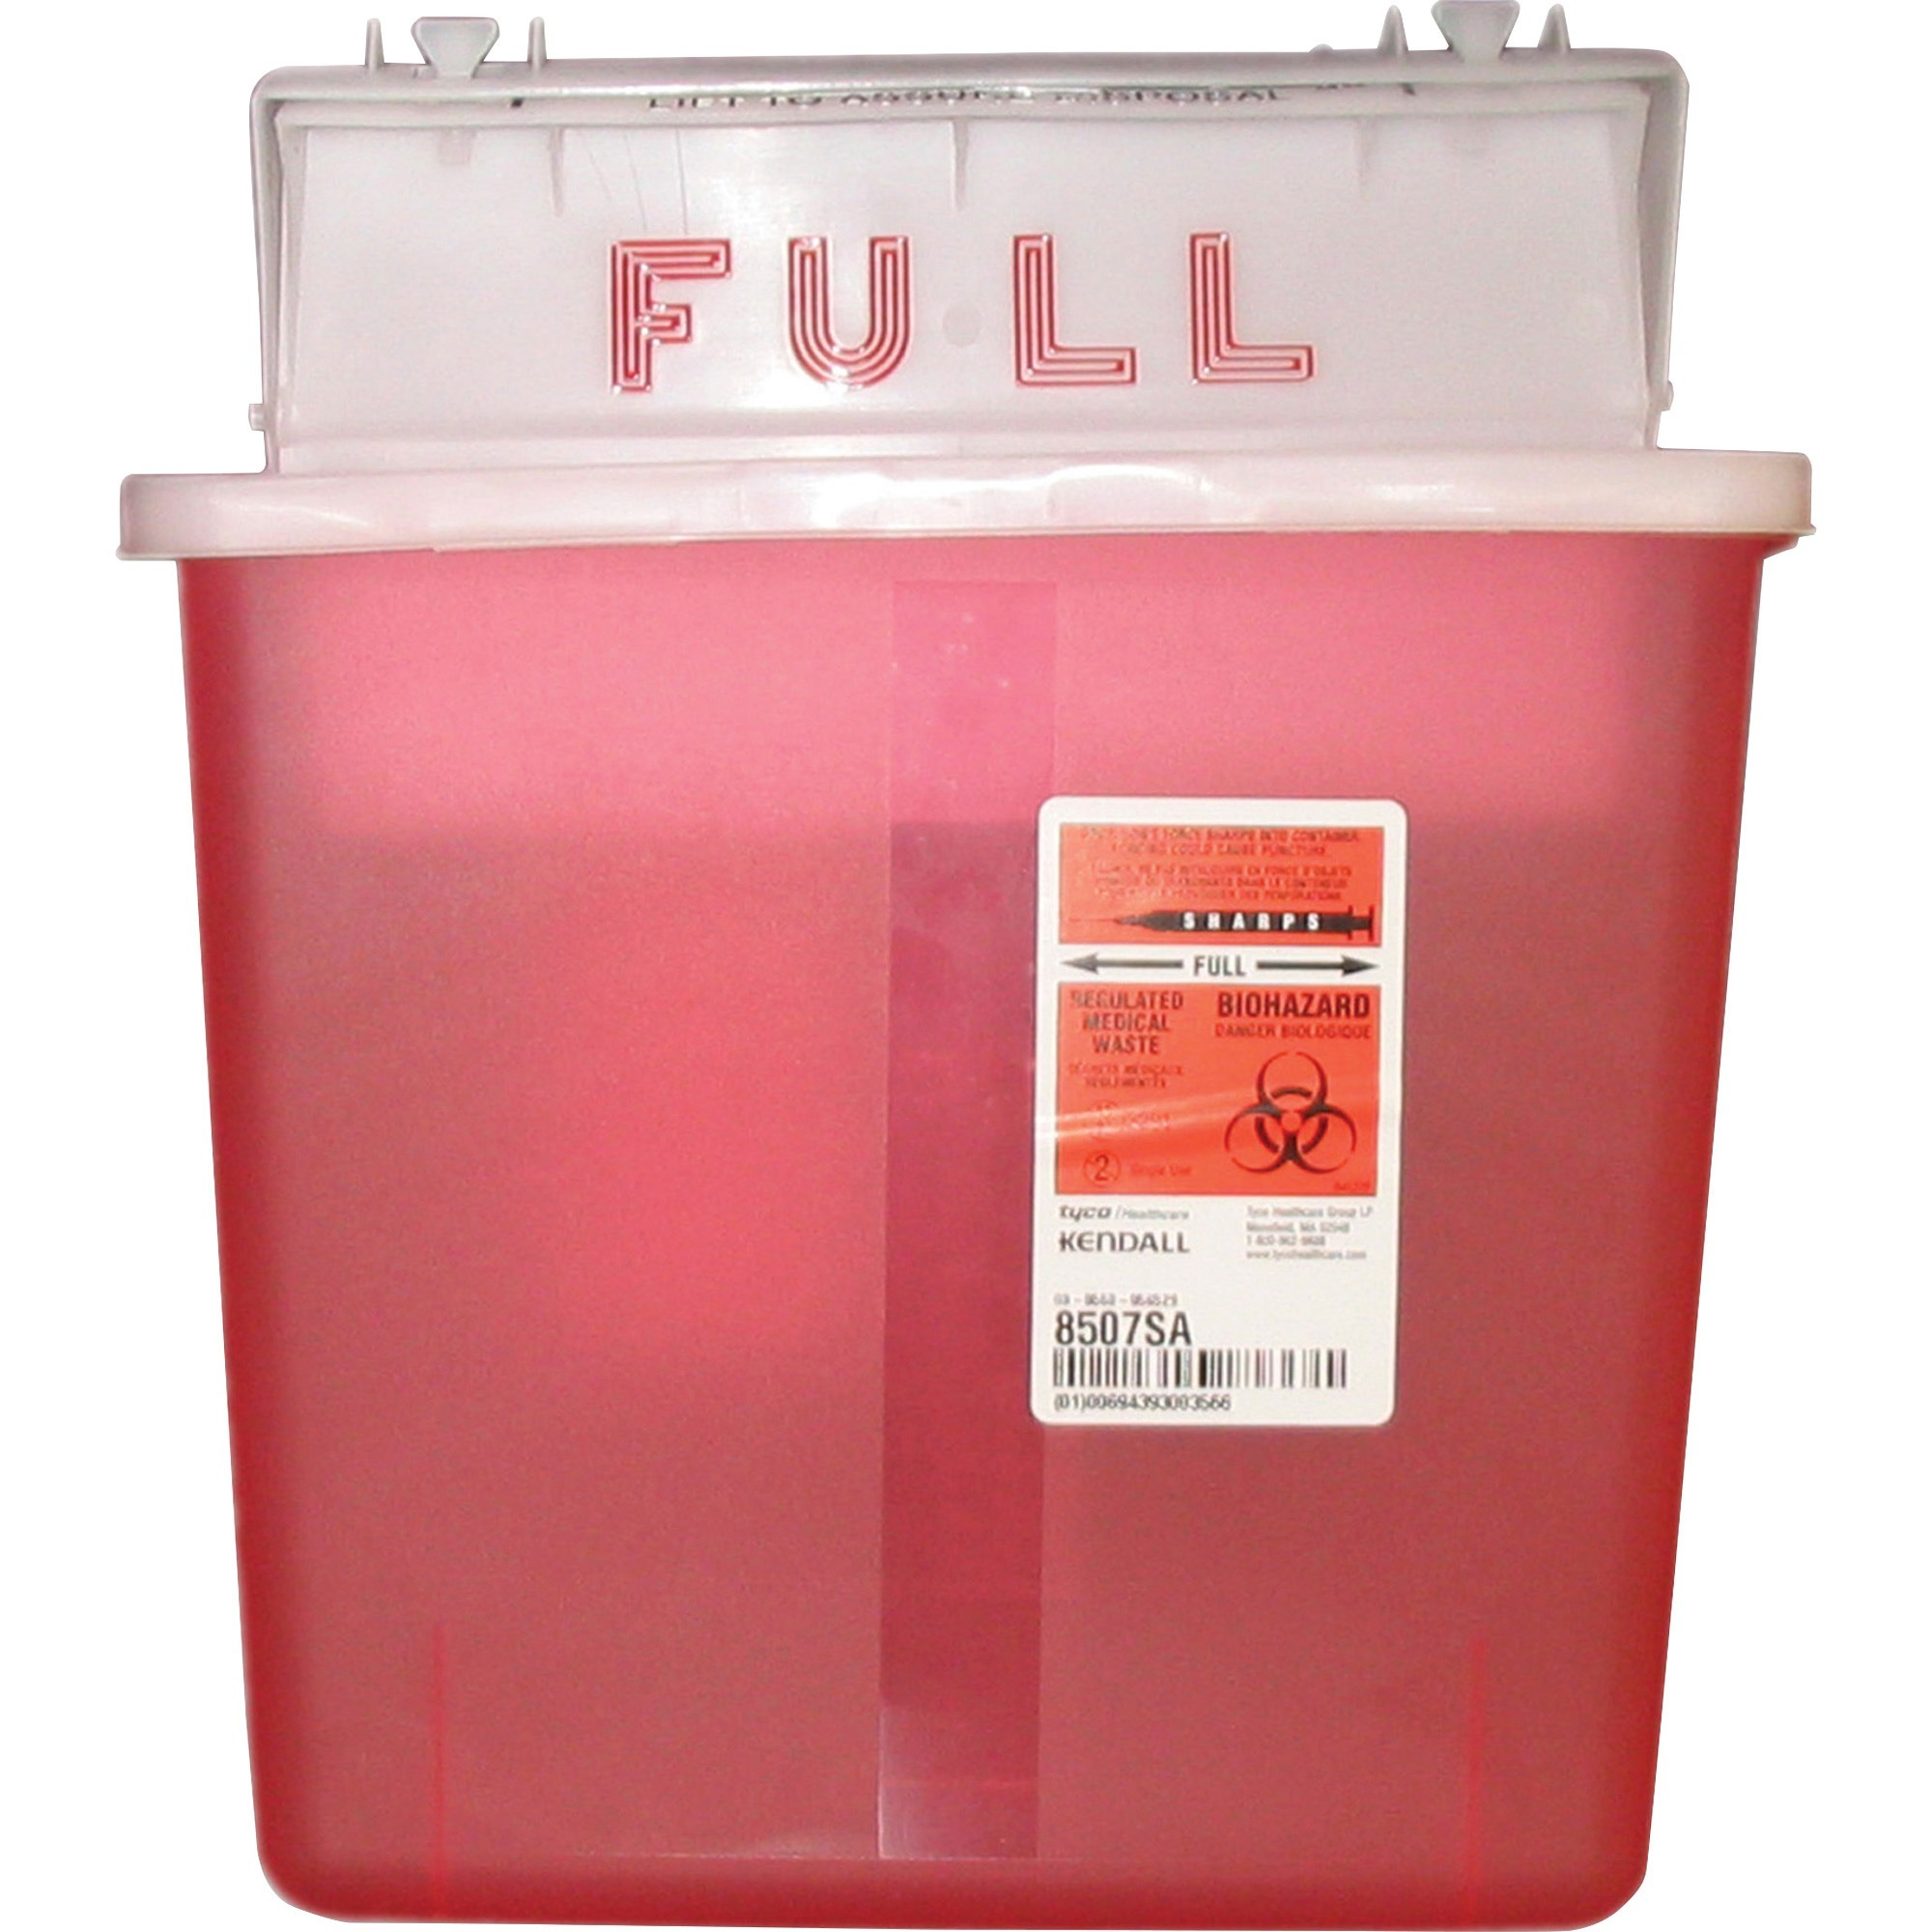 Covidien, CVDK5SS1007SA, Sharpstar 5 Quart Sharps Container with Lid, 1, Red